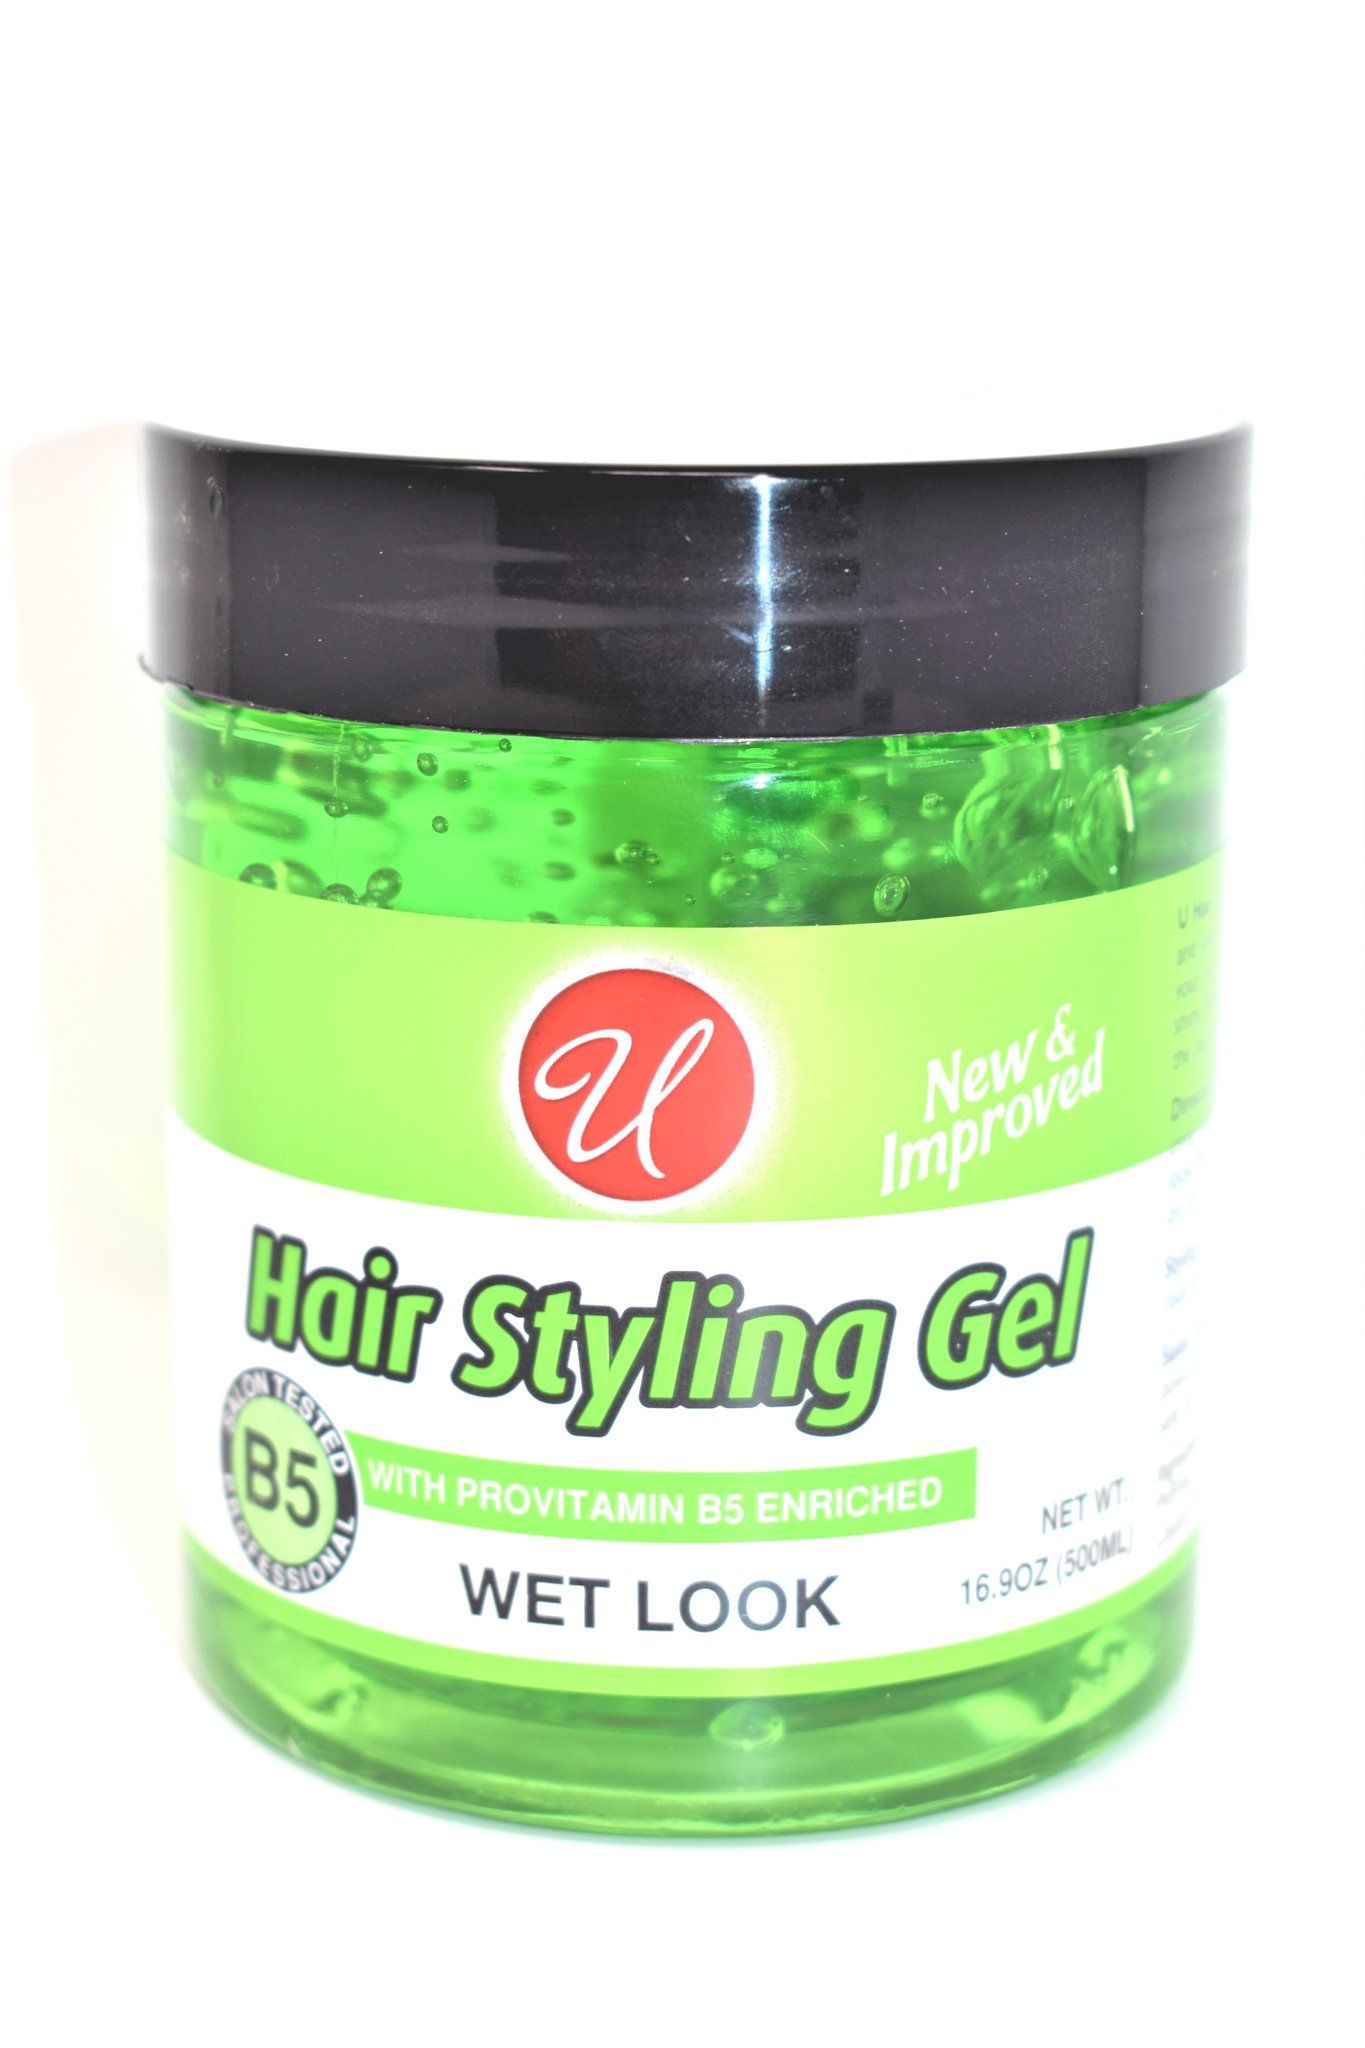 Universal Wet Look Hair Styling Gel 16 9 Oz Marketcol Wet Look Hair Styling Gel Hair Gel